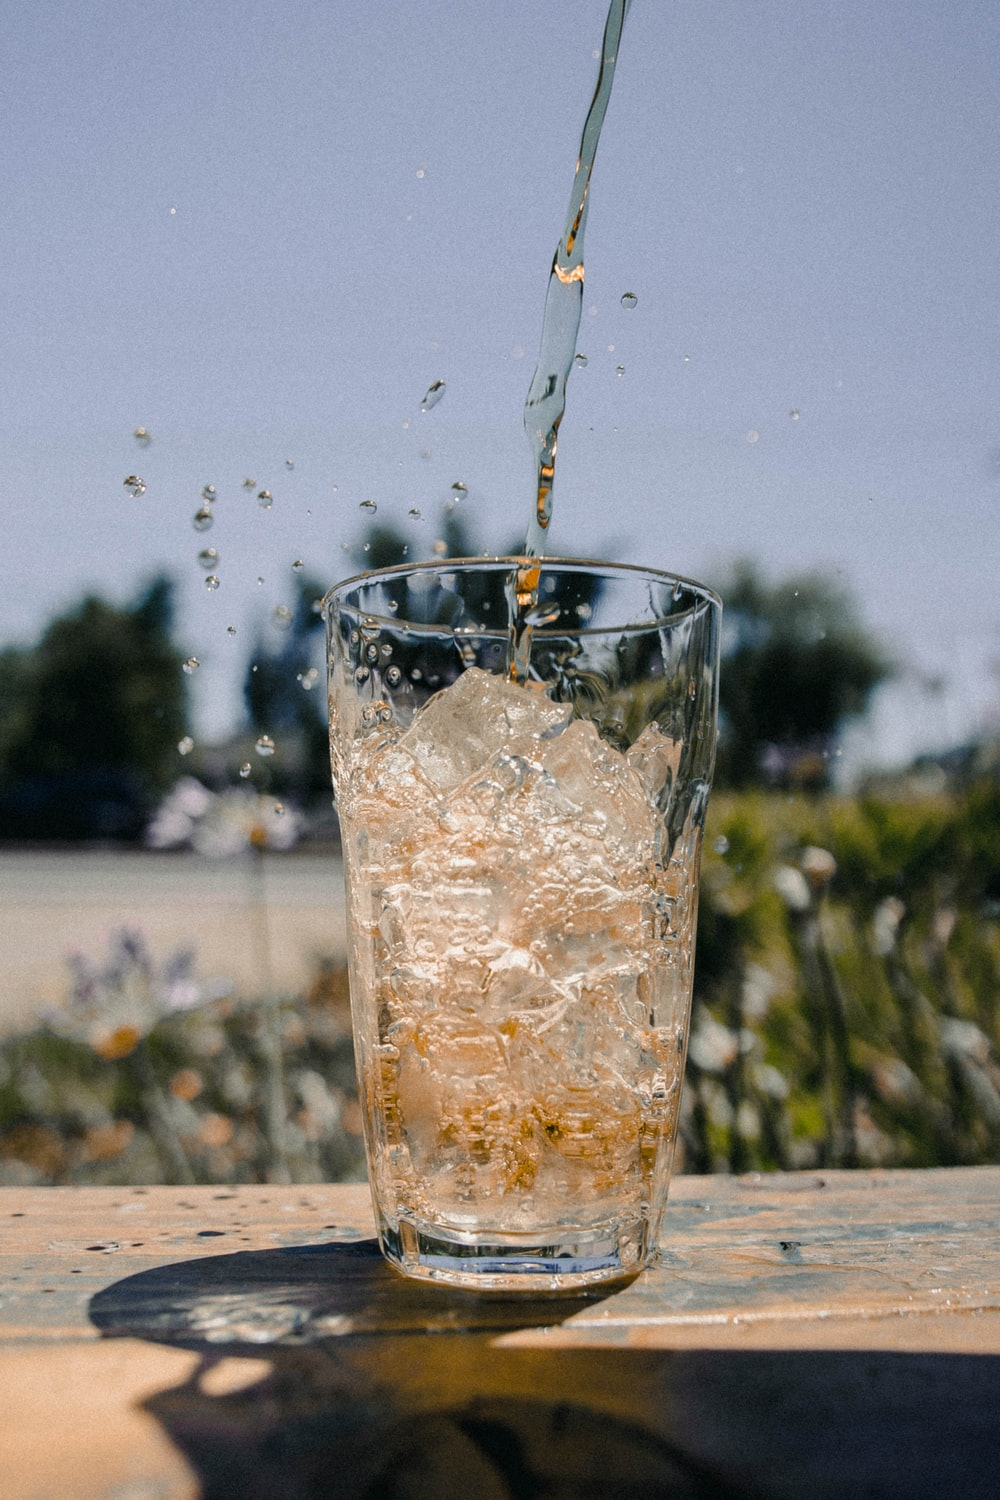 clear drinking glass with ice cubes and flowing liquid during daytime